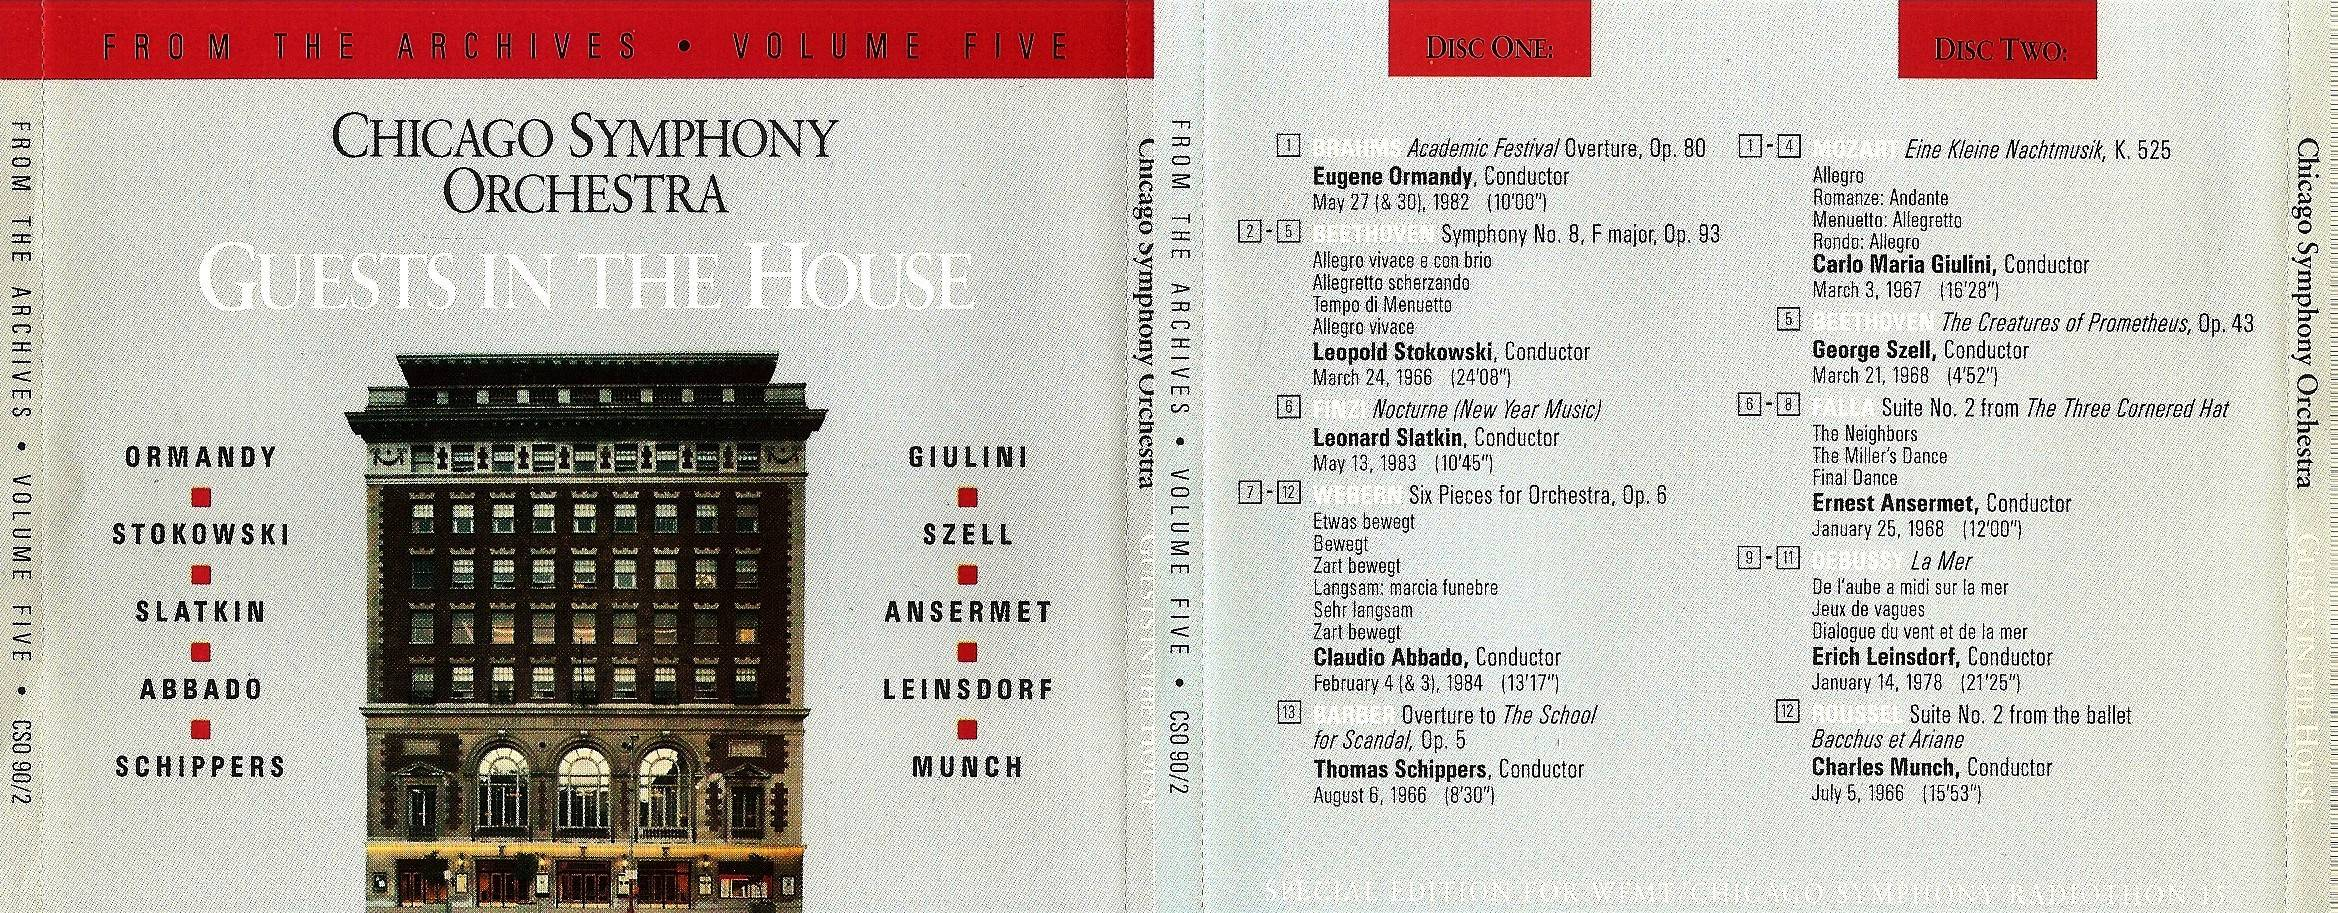 Chicago Symphony Orchestra - From The Archives, Vol.5: Guests in the House, 2-CD set (1990)